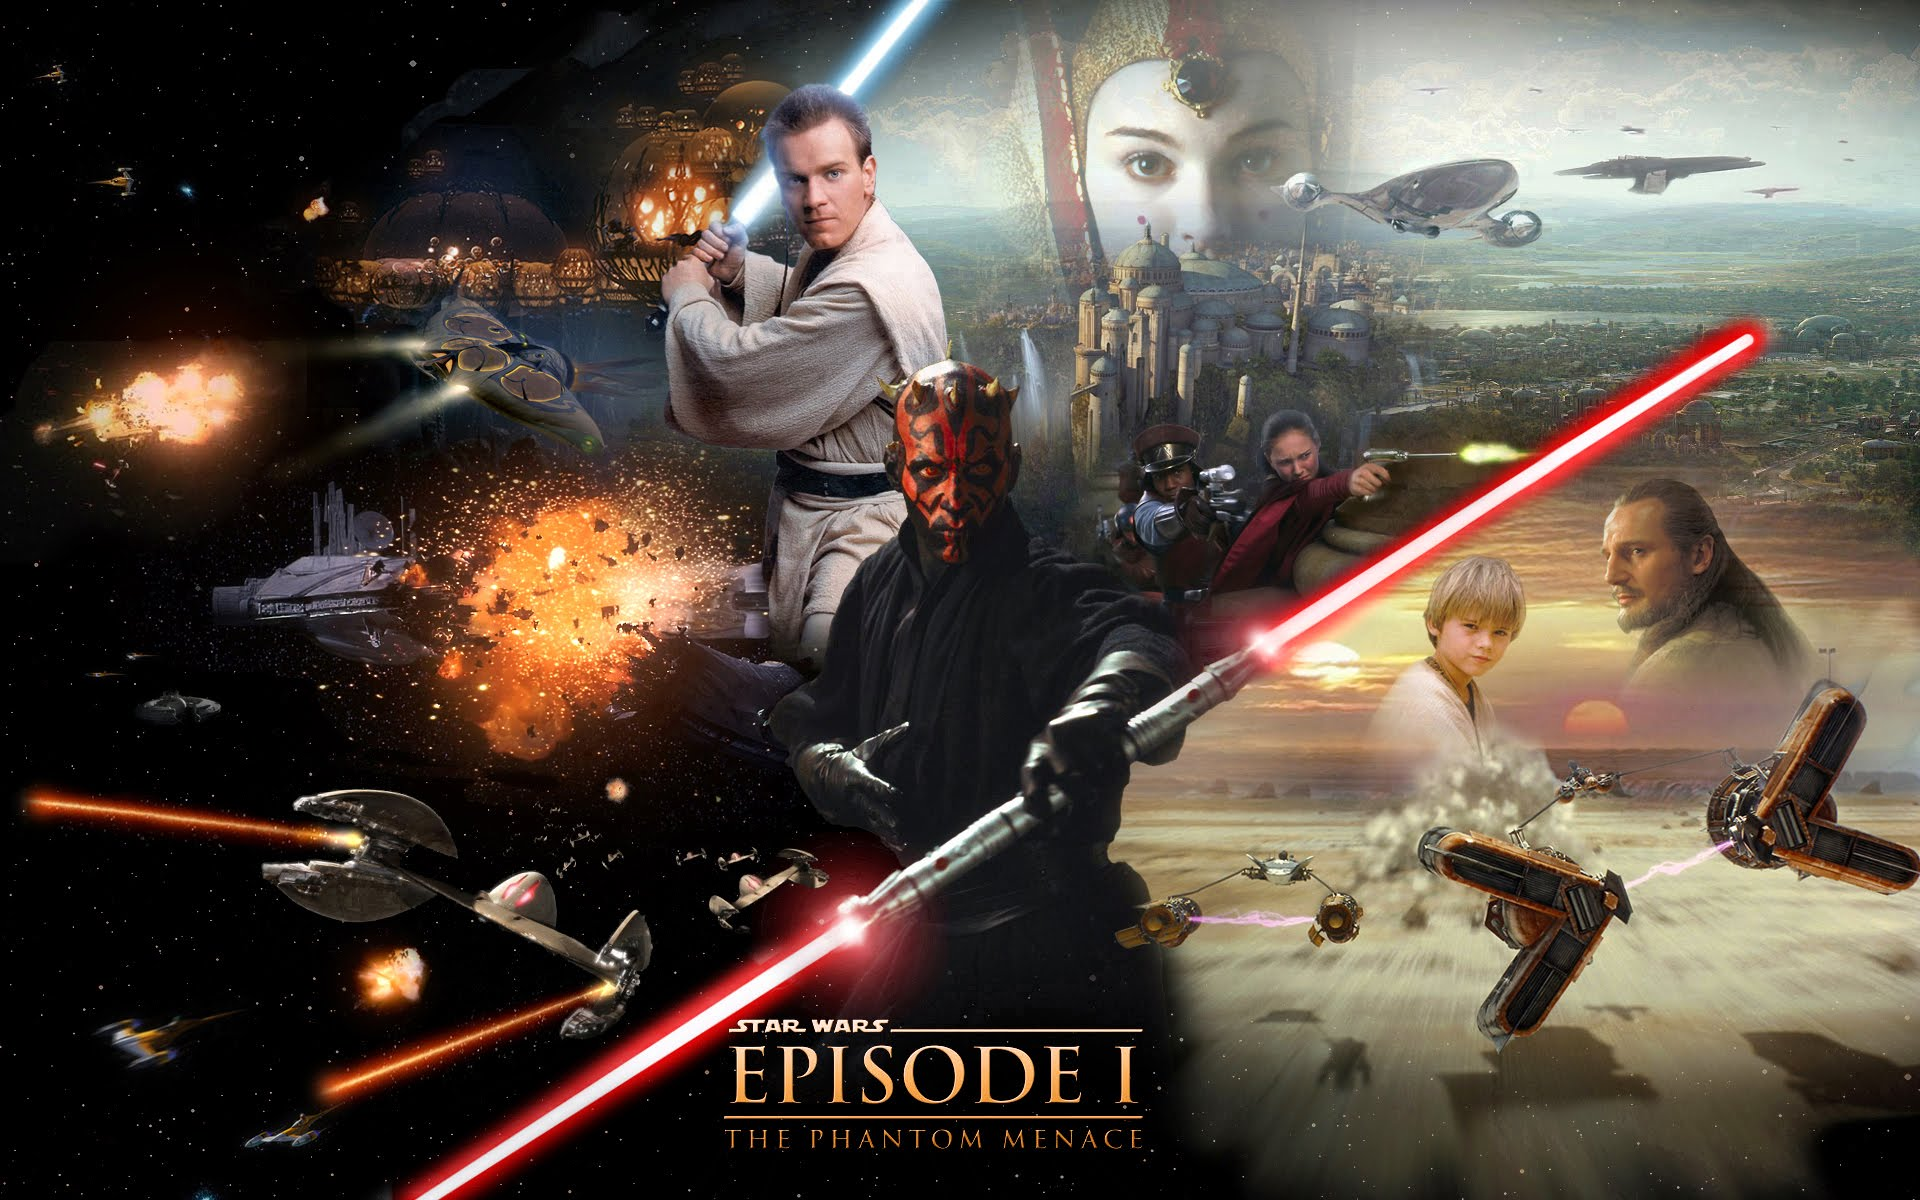 Episode I: The Phantom Menace